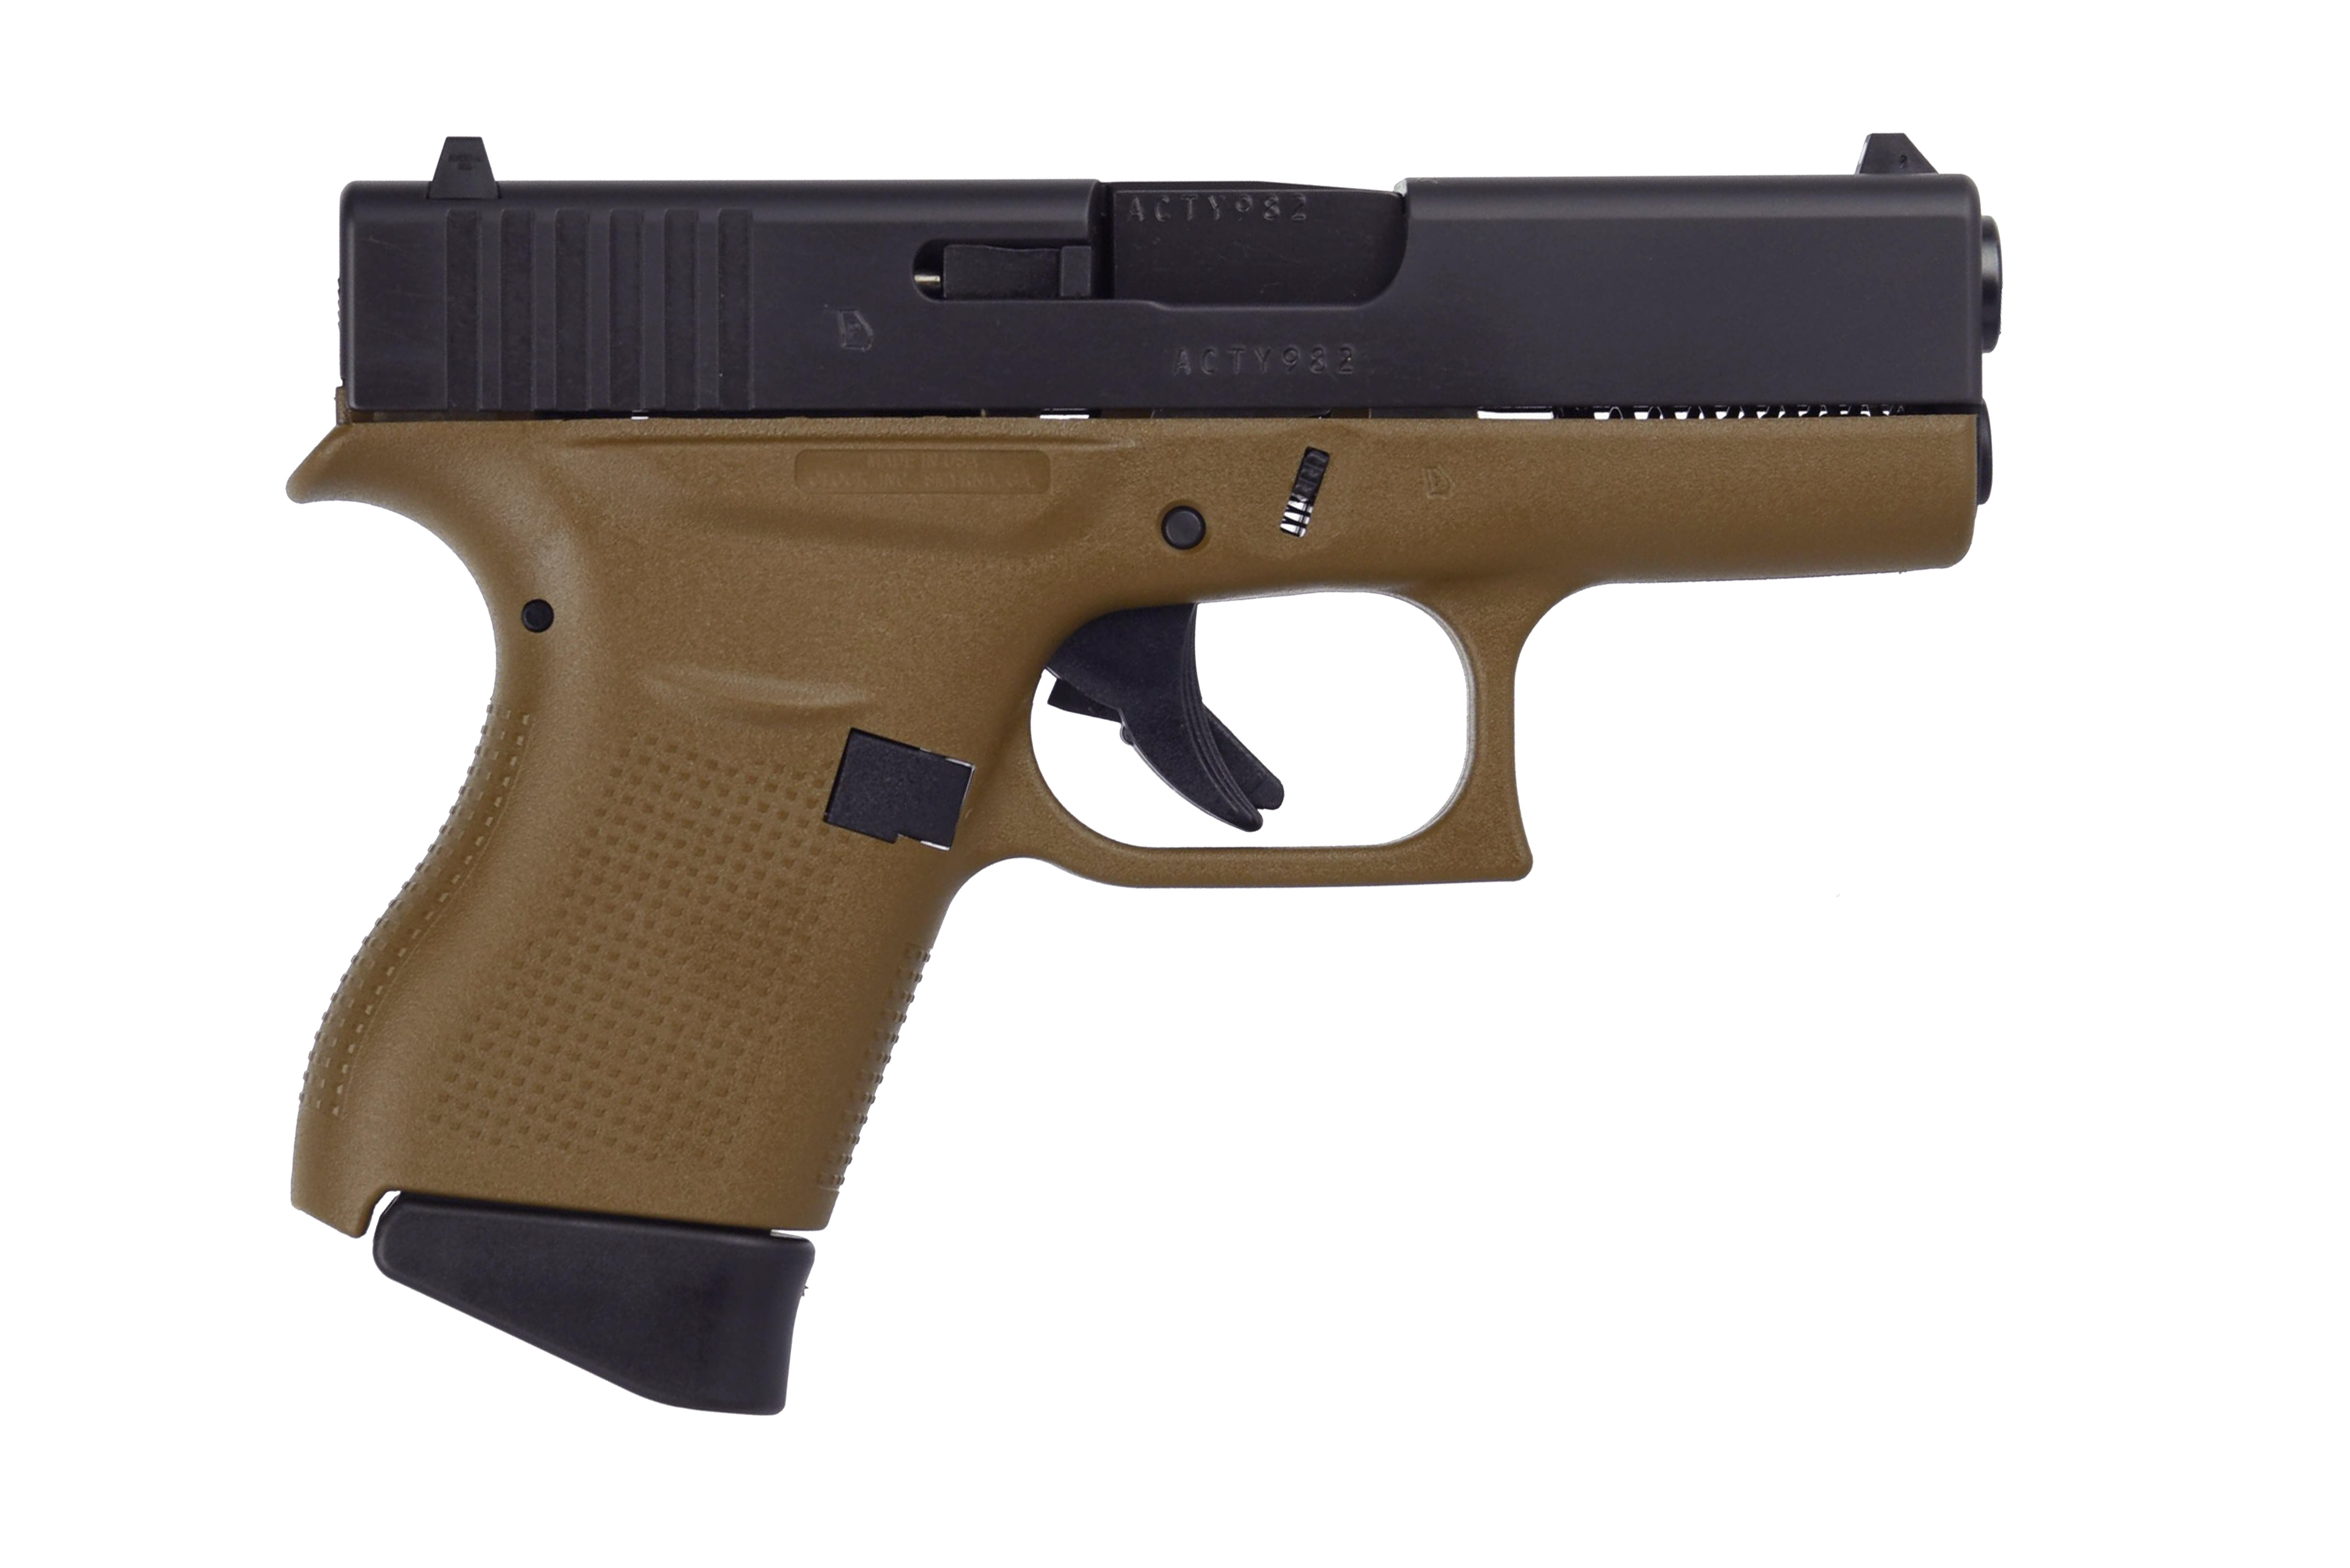 G43 G3 FDE 9MM 6+1 3.39 FS - TWO 6RD MAGAZINES